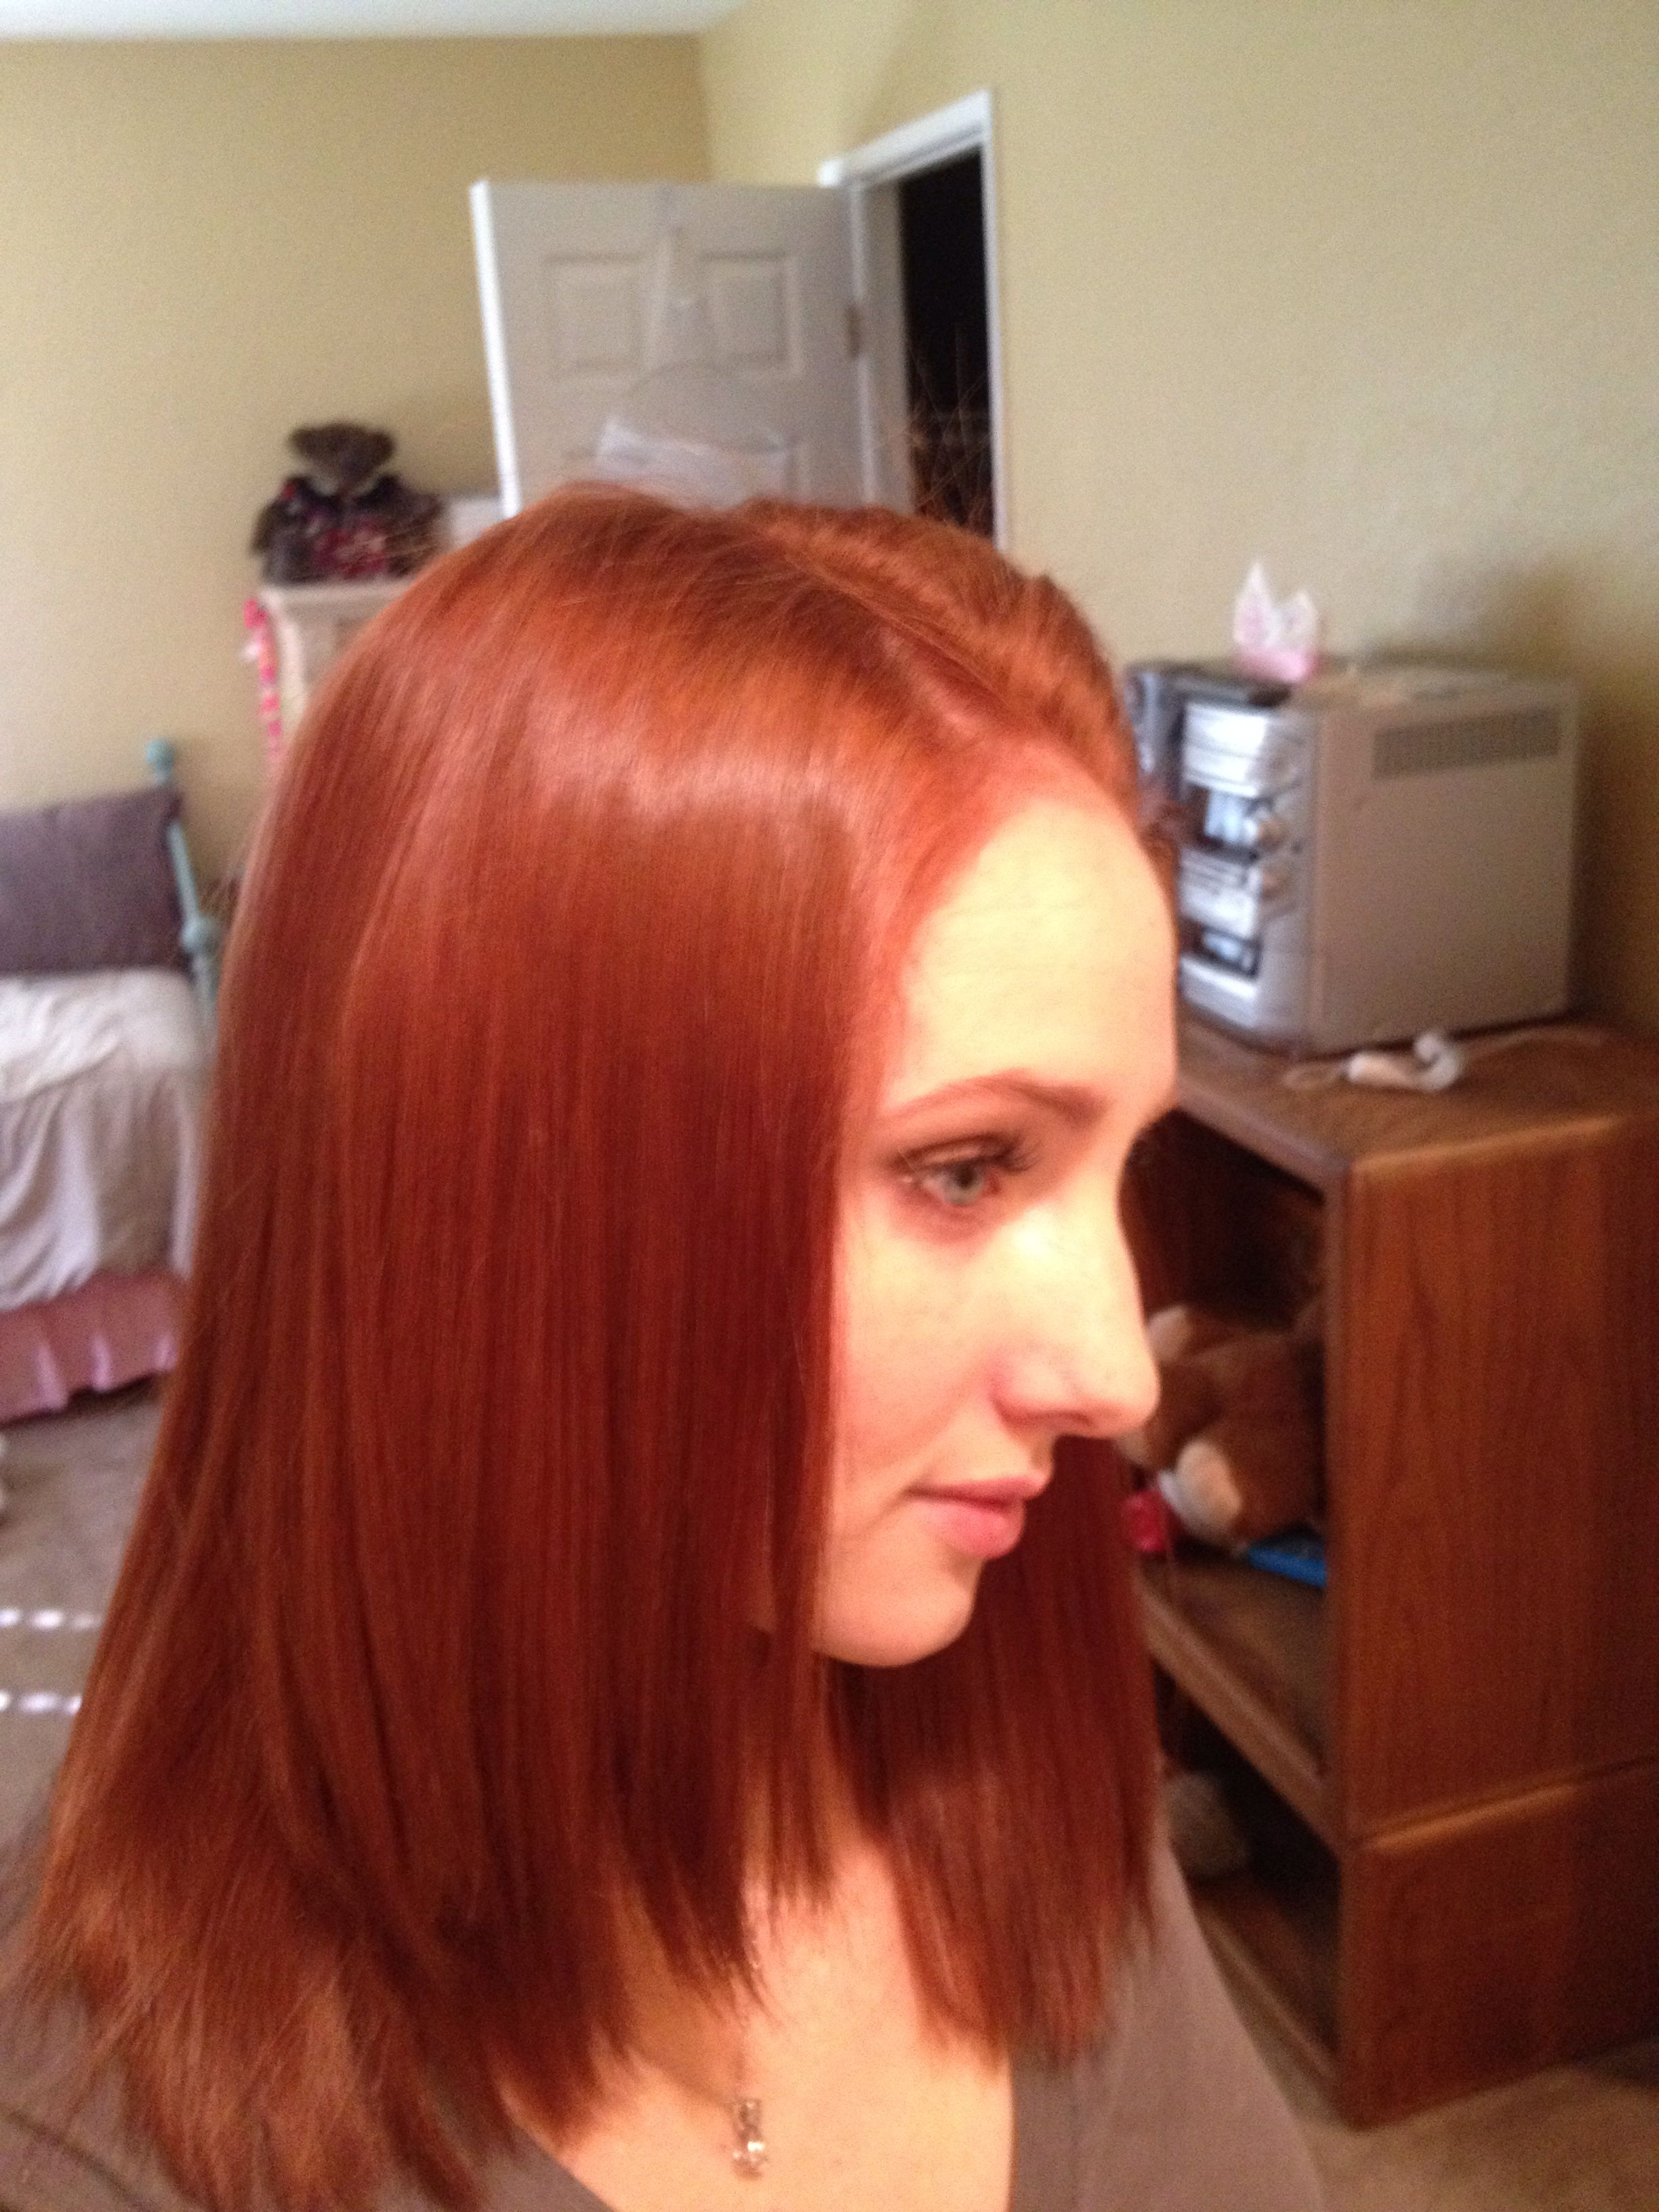 My new fall hair color! :-) I used revlon colorsilk light ...